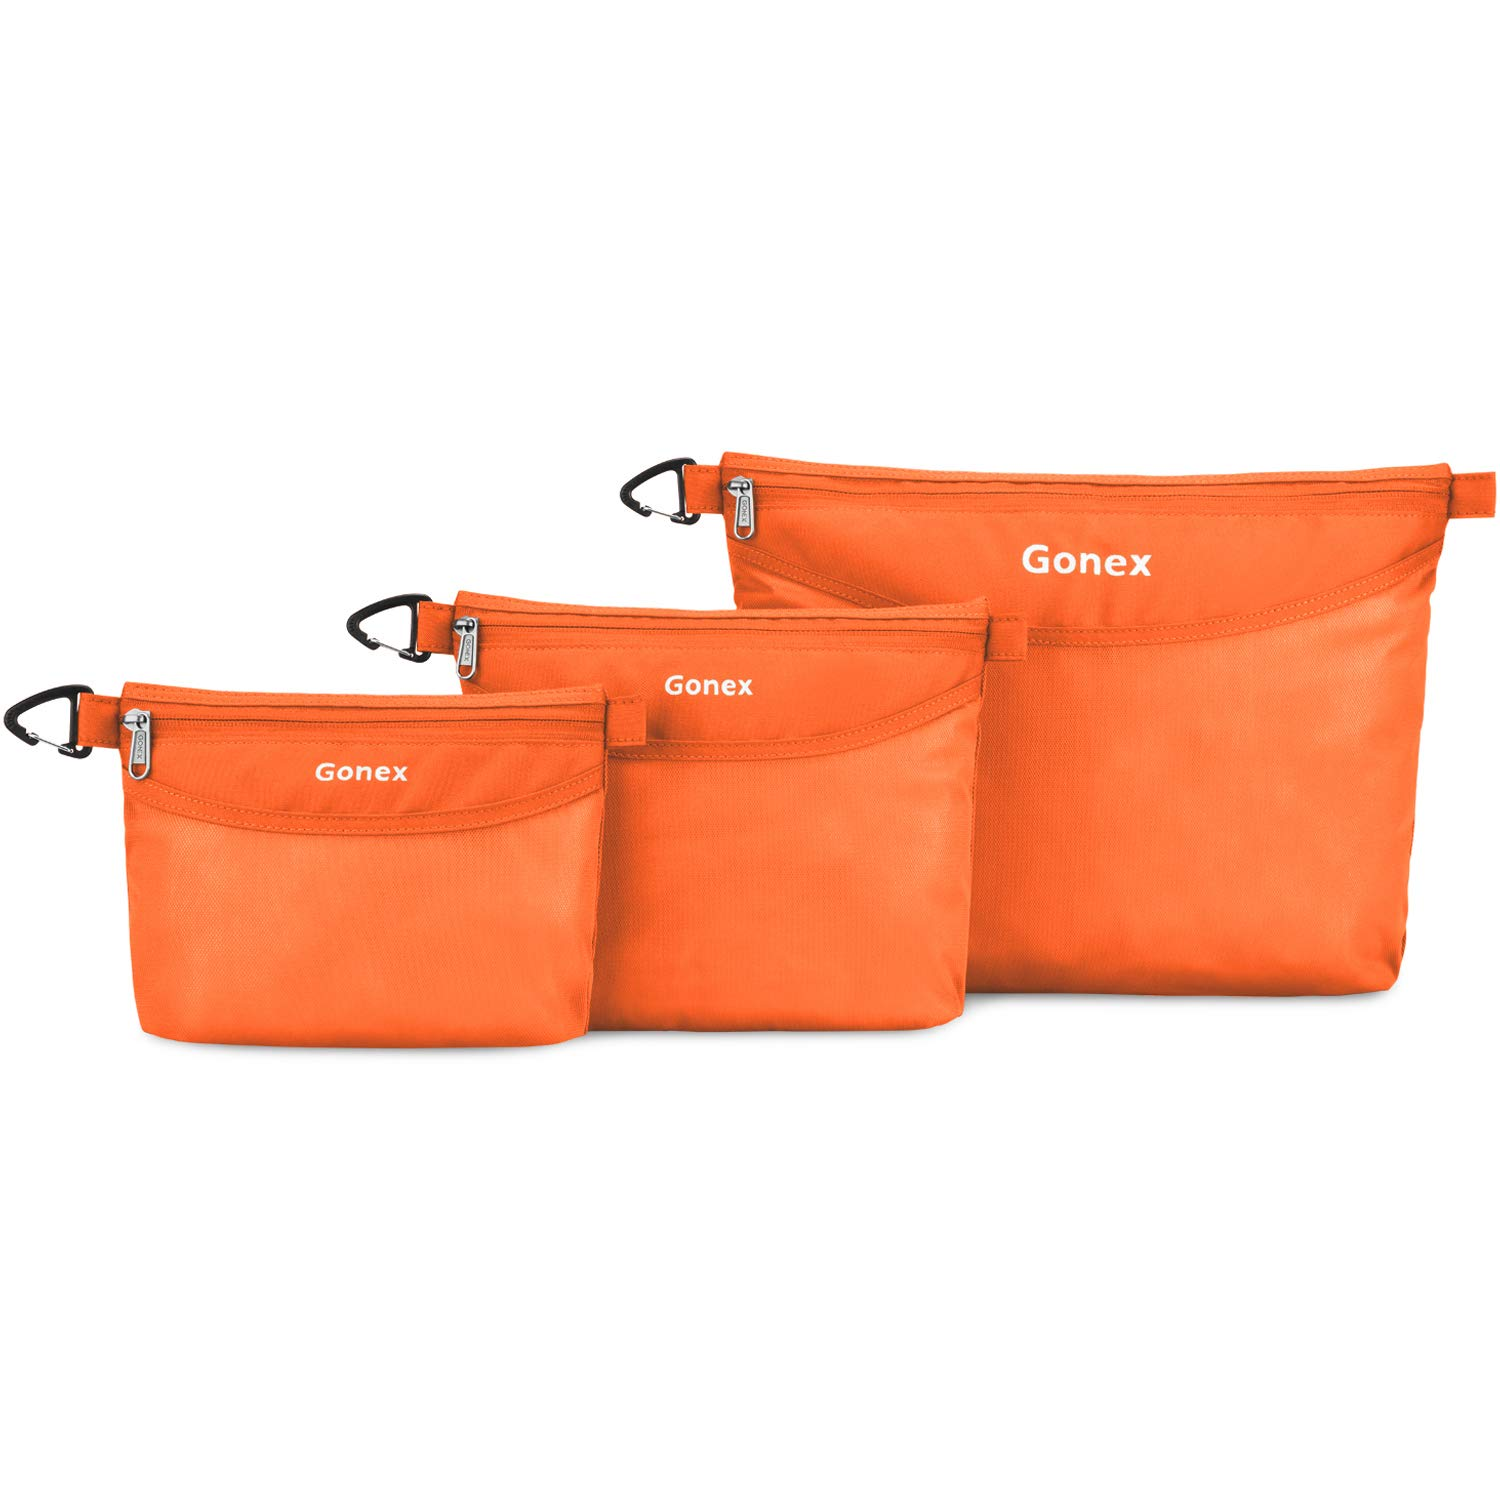 Gonex Travel Packing Toiletry Pouches with Zippers Water-resistant Packing Bag Organizer 3 Sets-Large, Medium& Small for Travel, Office, Outdoor, Art Orange